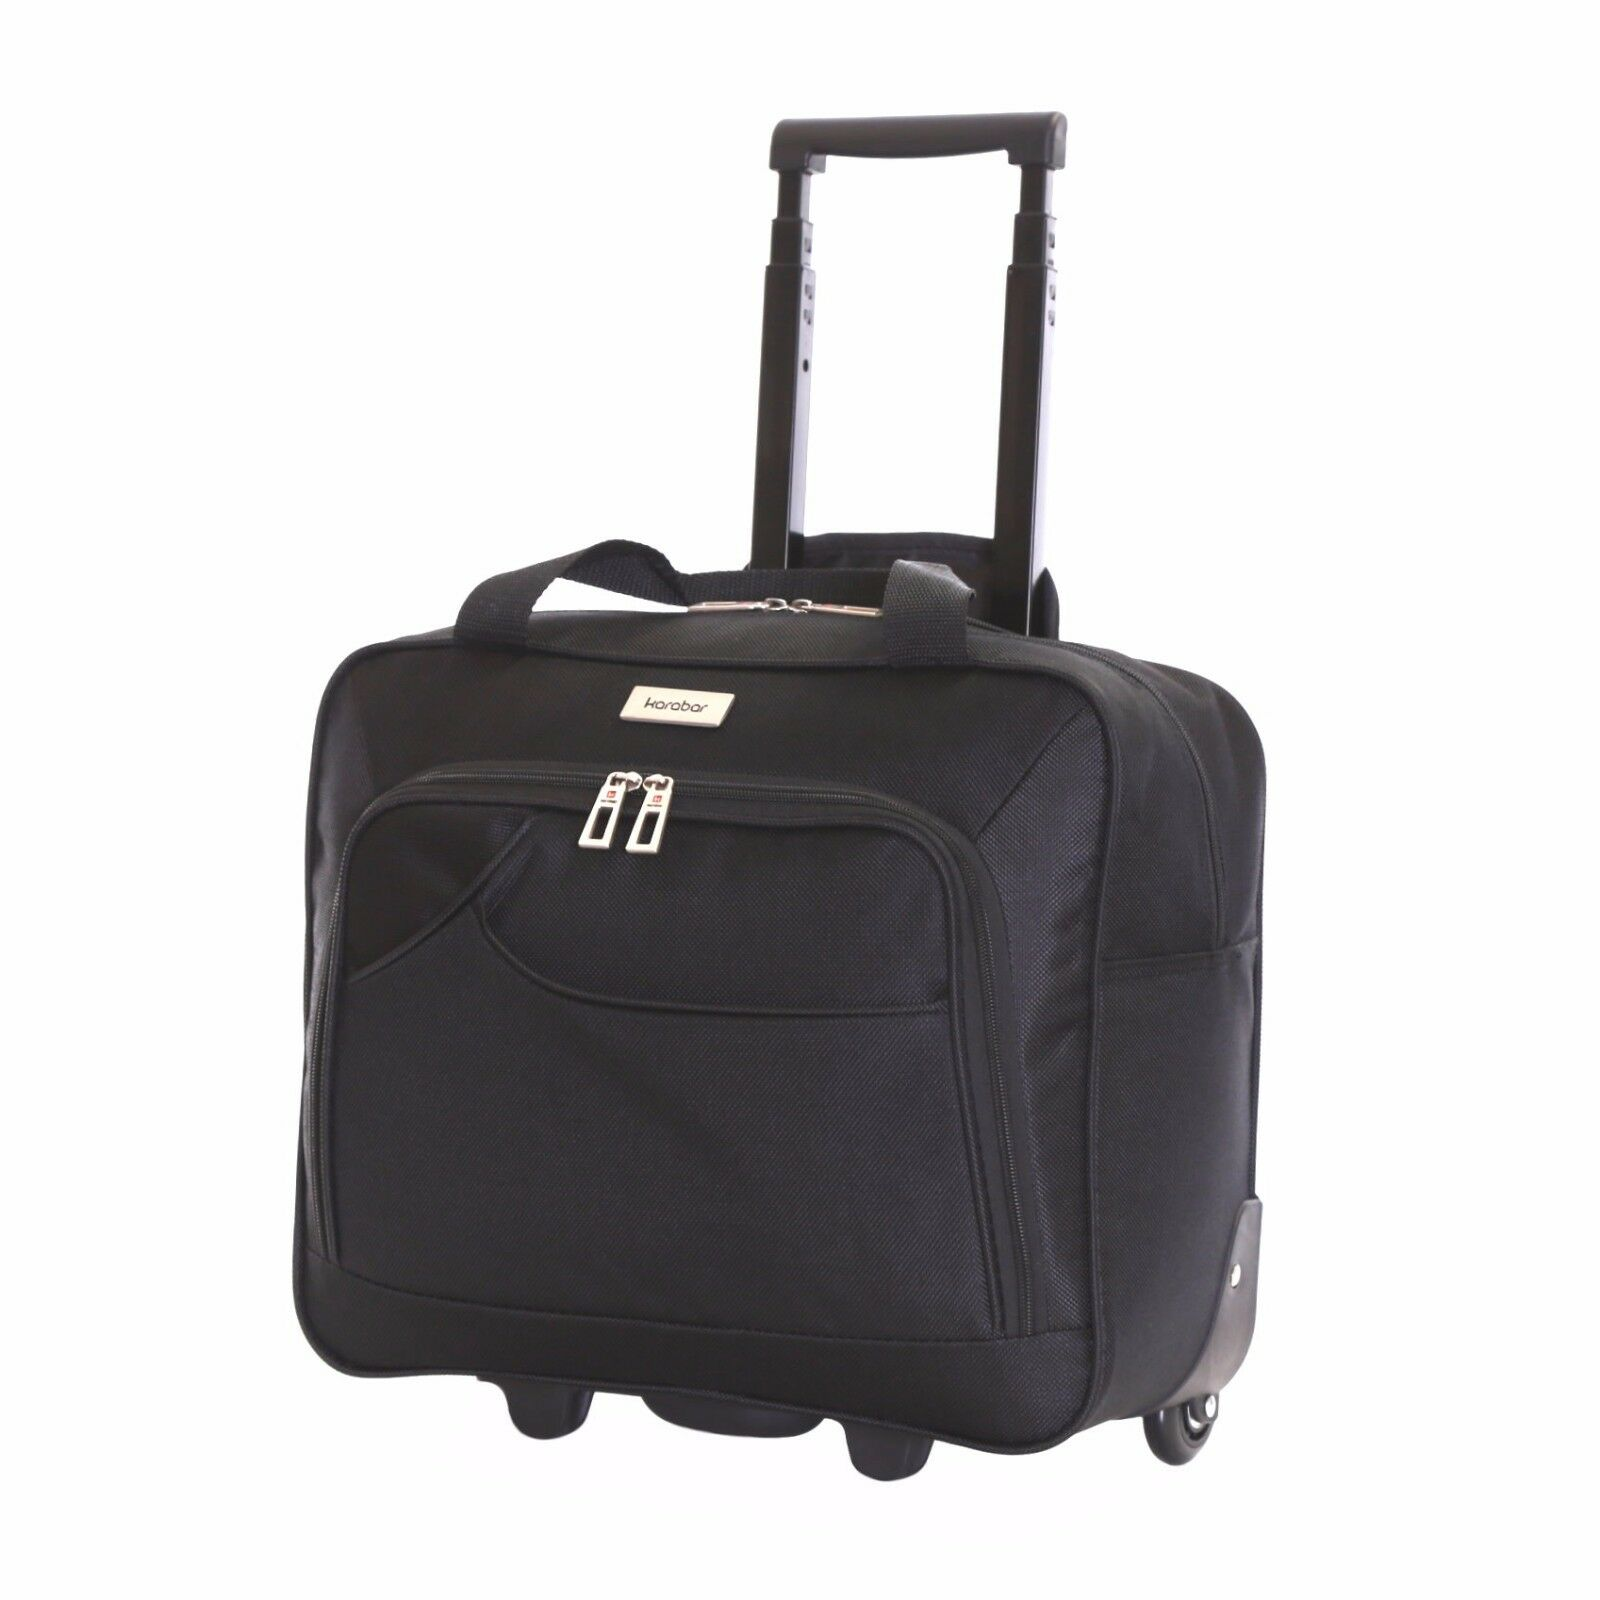 Wheeled ryanair cabin laptop computer travel suitcase for Laptop cabin bag